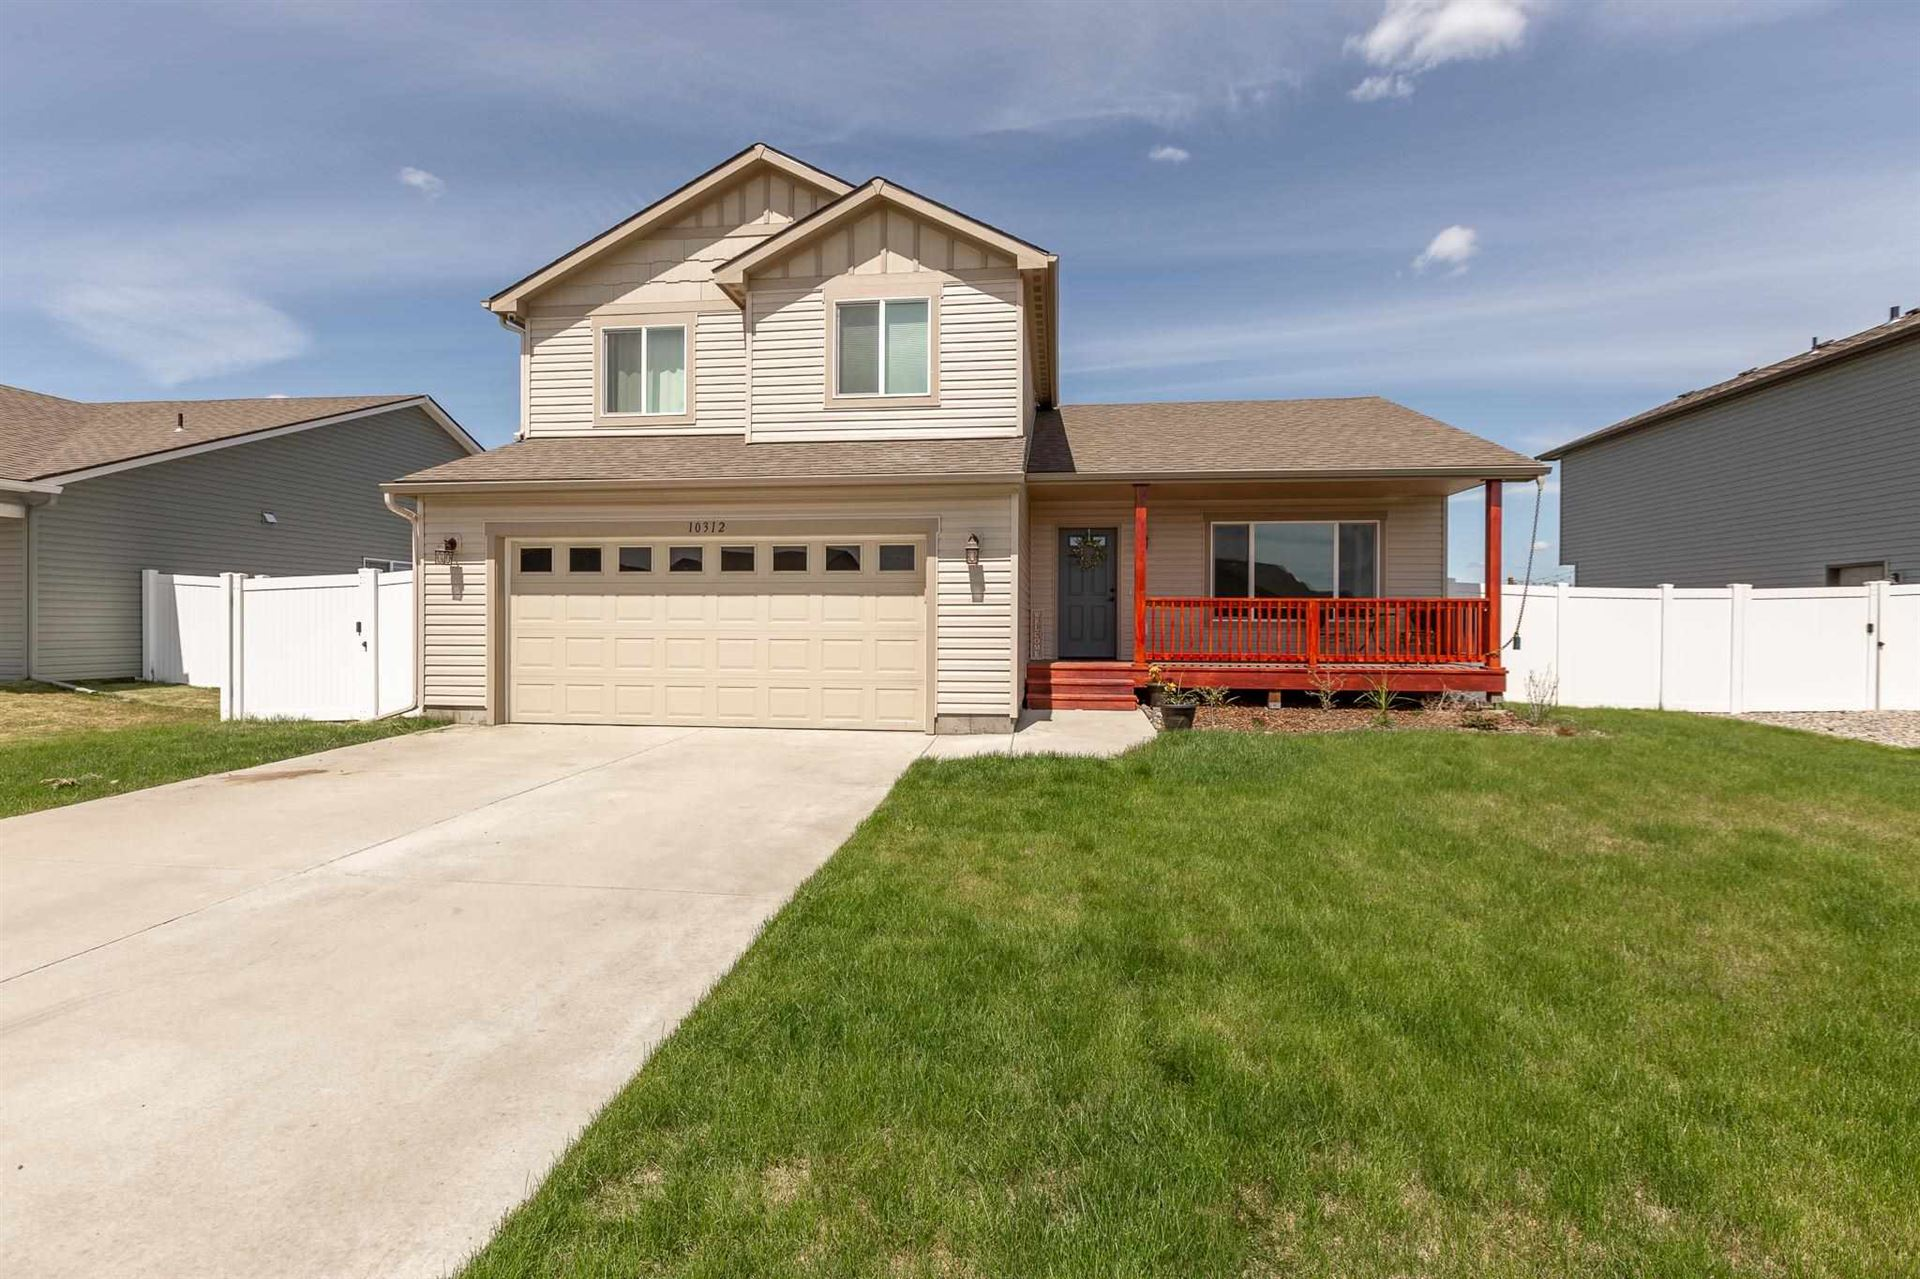 10312 W 9th Ave, Airway Heights, WA 99224 - #: 202115553